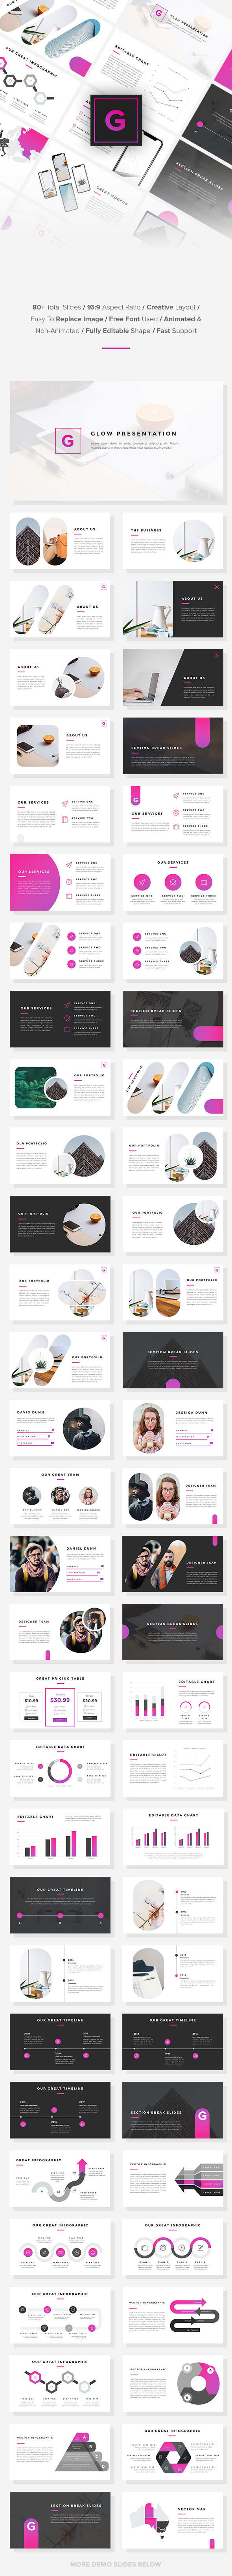 Glow - Business Google Slides Template - Google Slides Presentation Templates